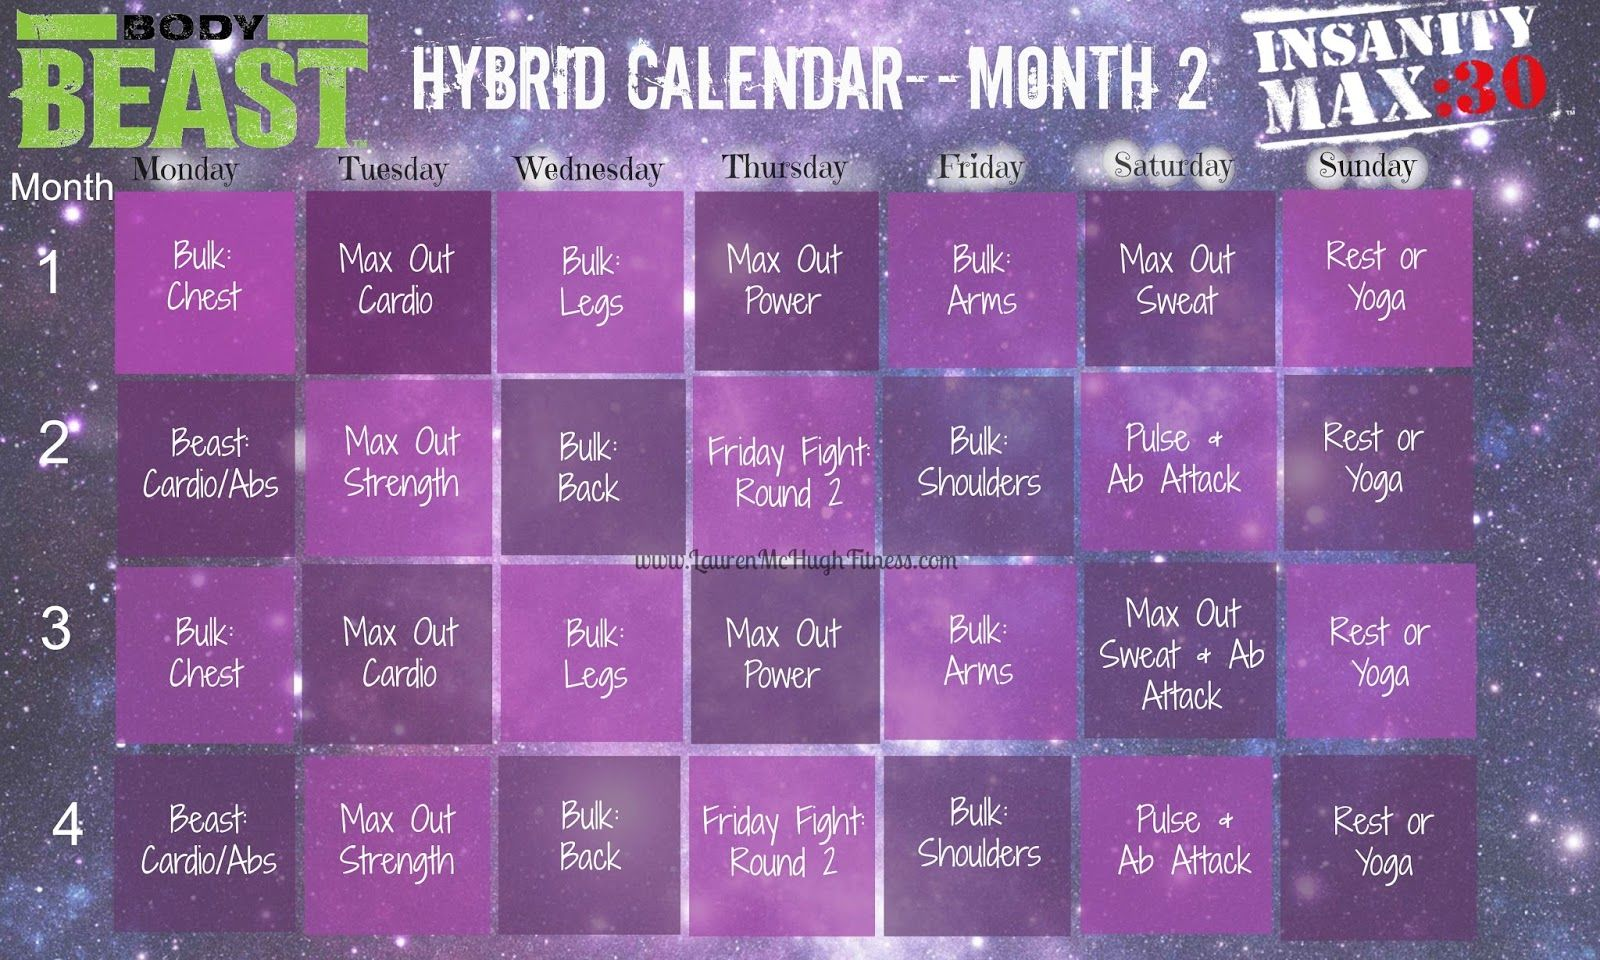 Body Beast And Max 30 Hybrid Workout Schedule